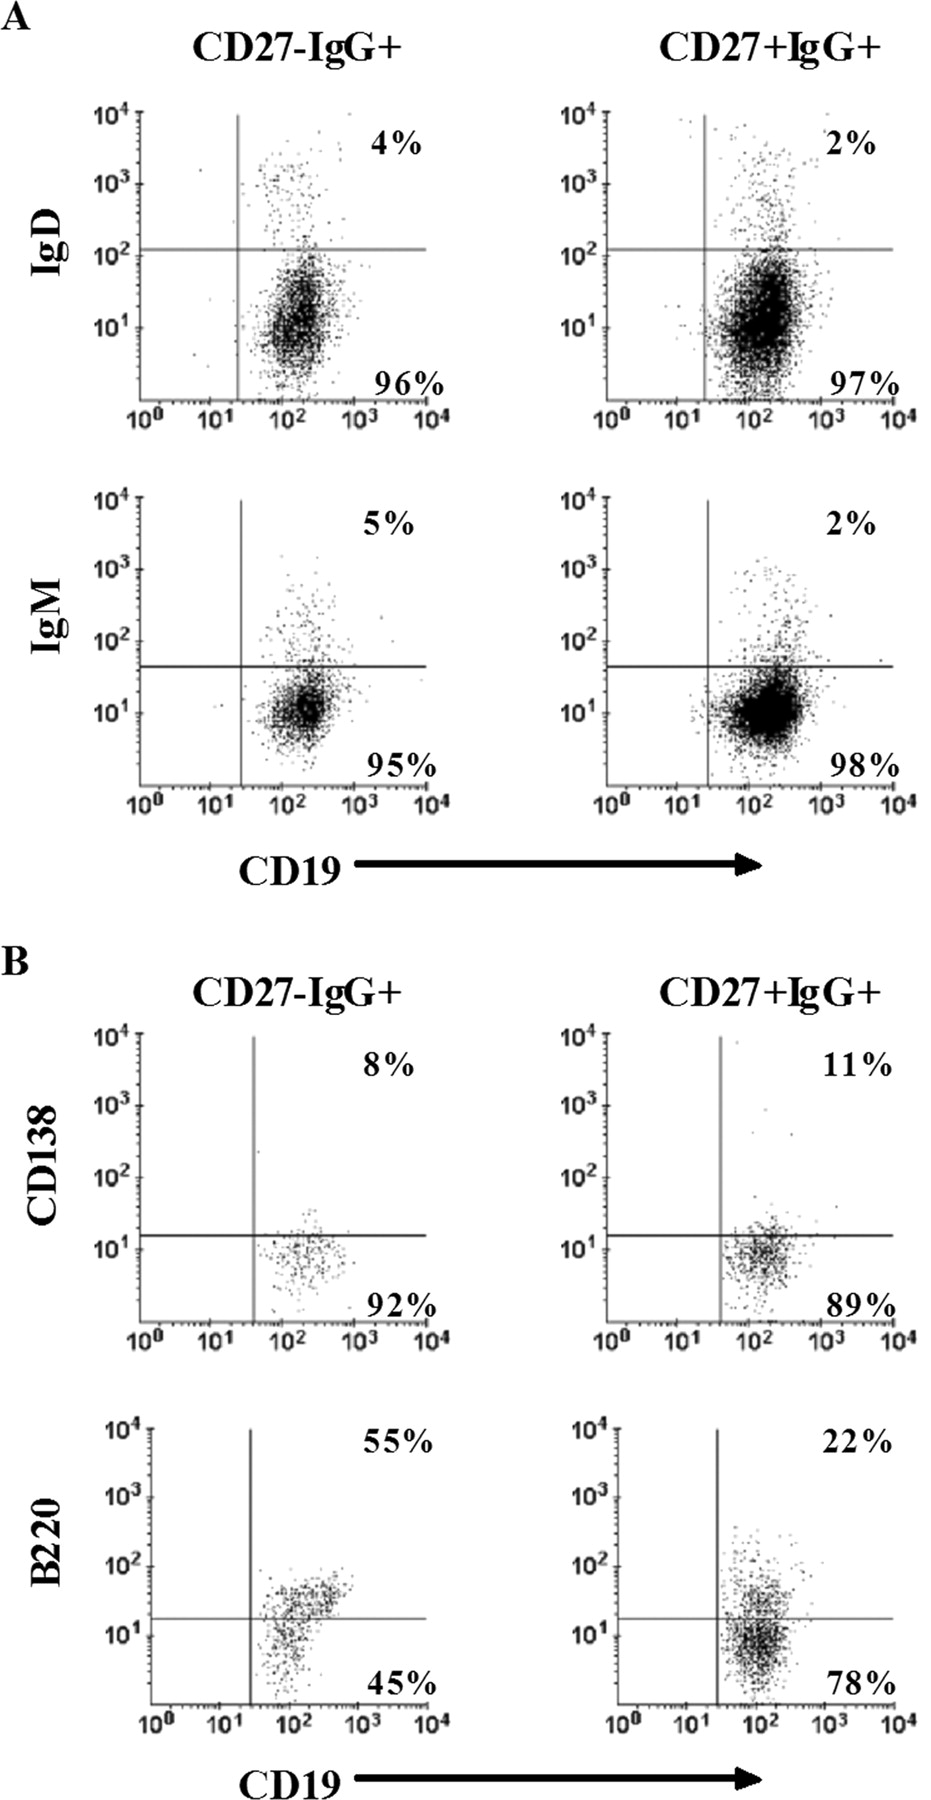 A New Memory Cd27 Igg B Cell Population In Peripheral